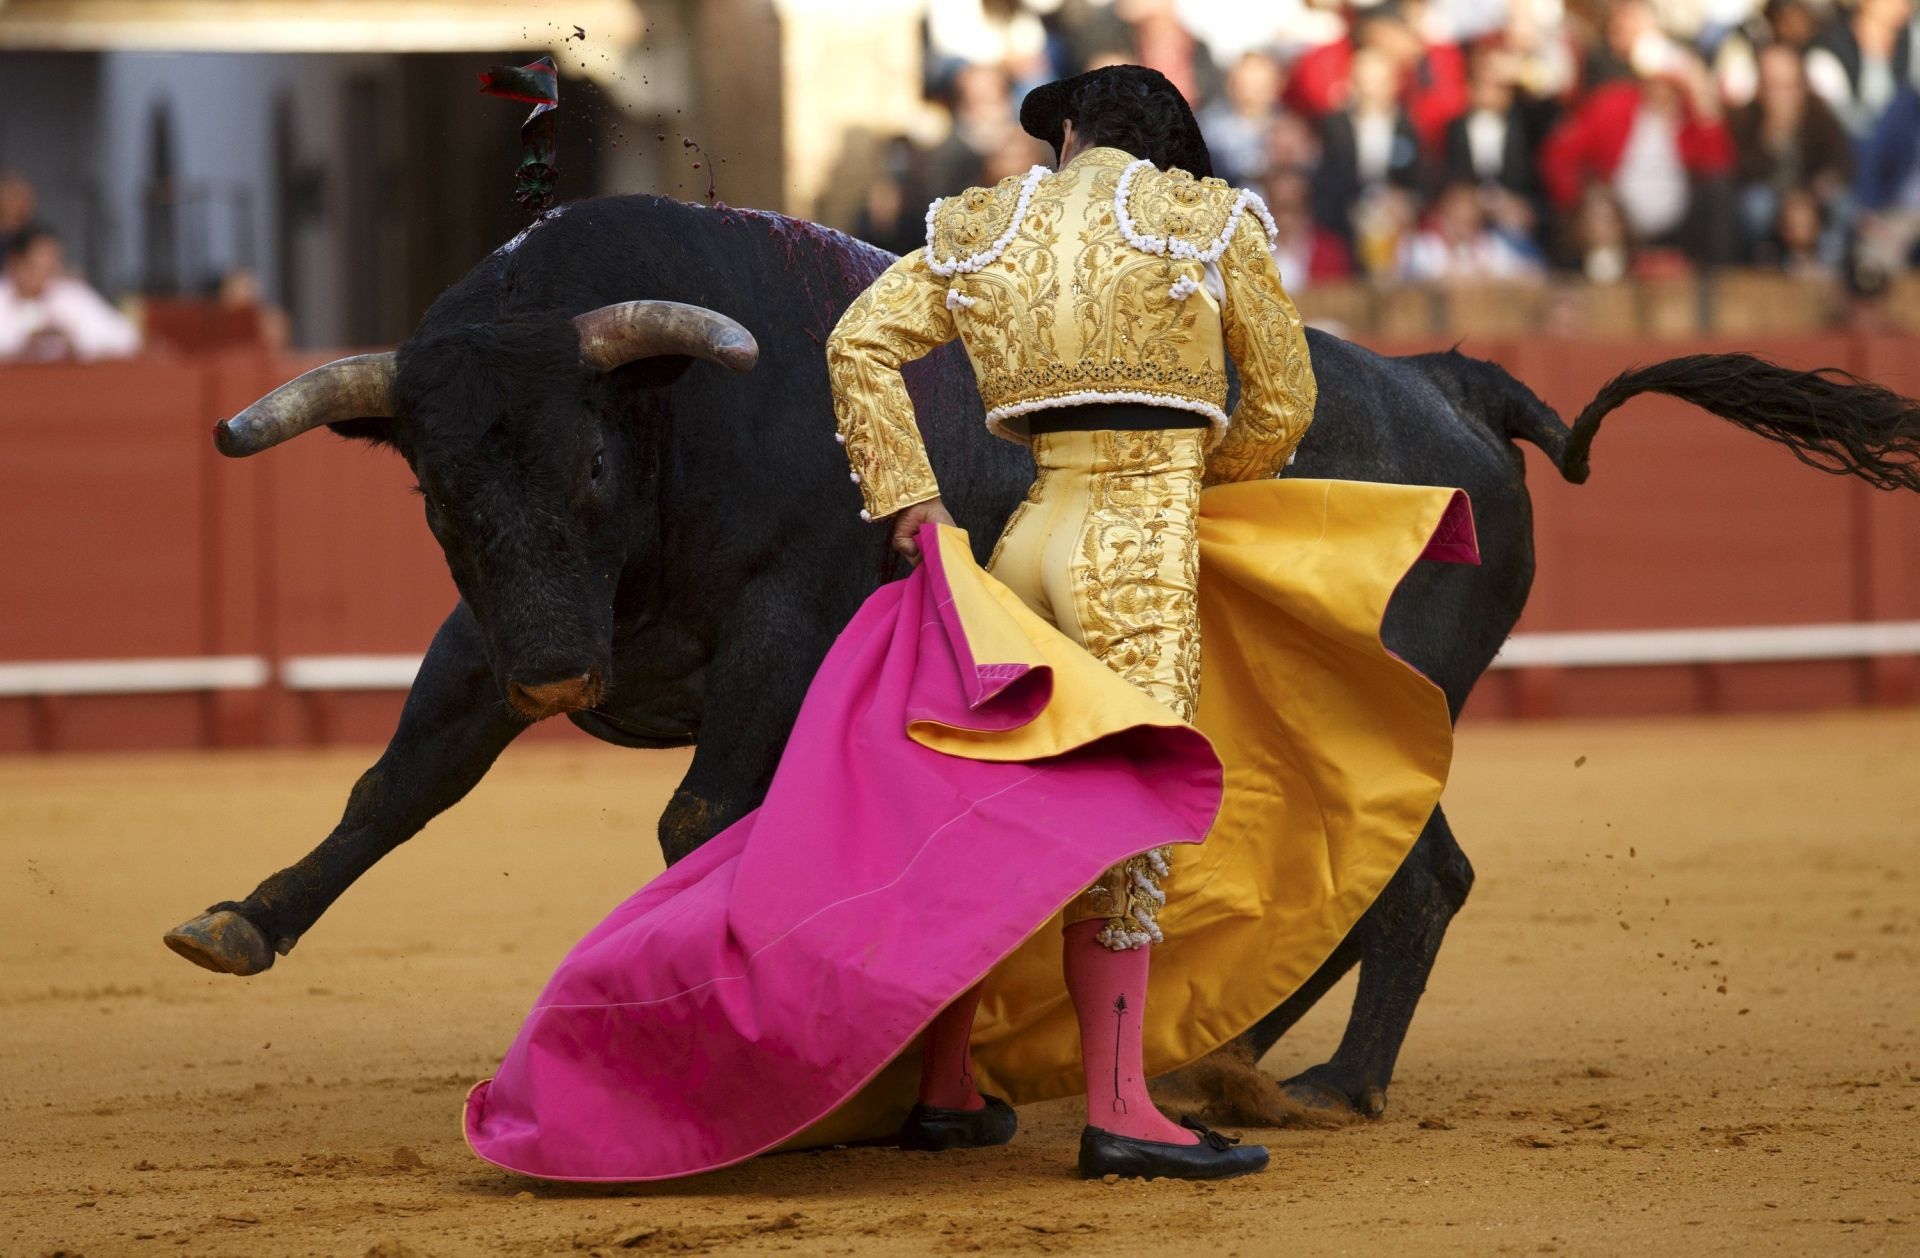 Bull Fighting Images